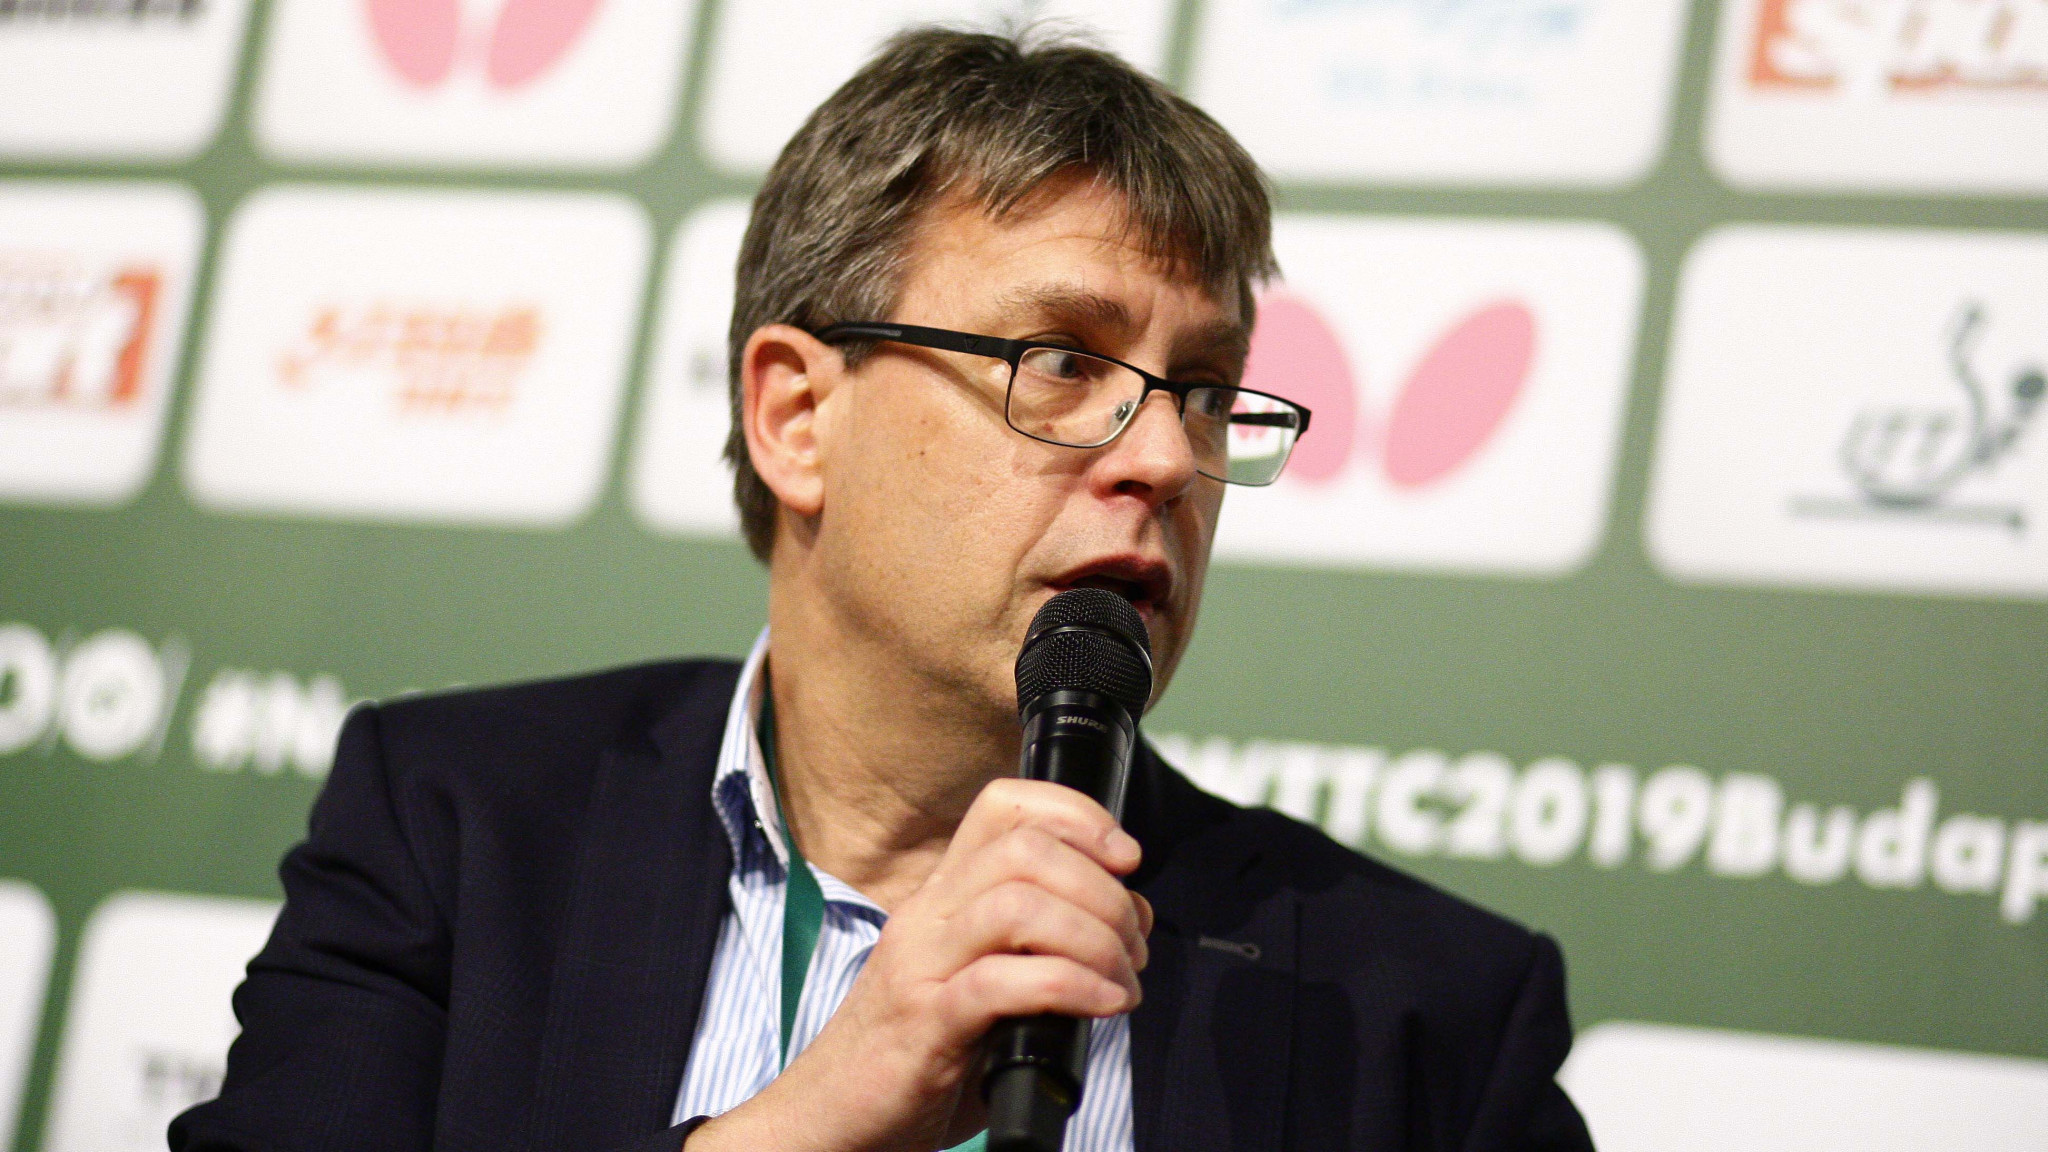 """Exclusive: ITTF President hits back at two senior officials for """"discrediting"""" allegations"""